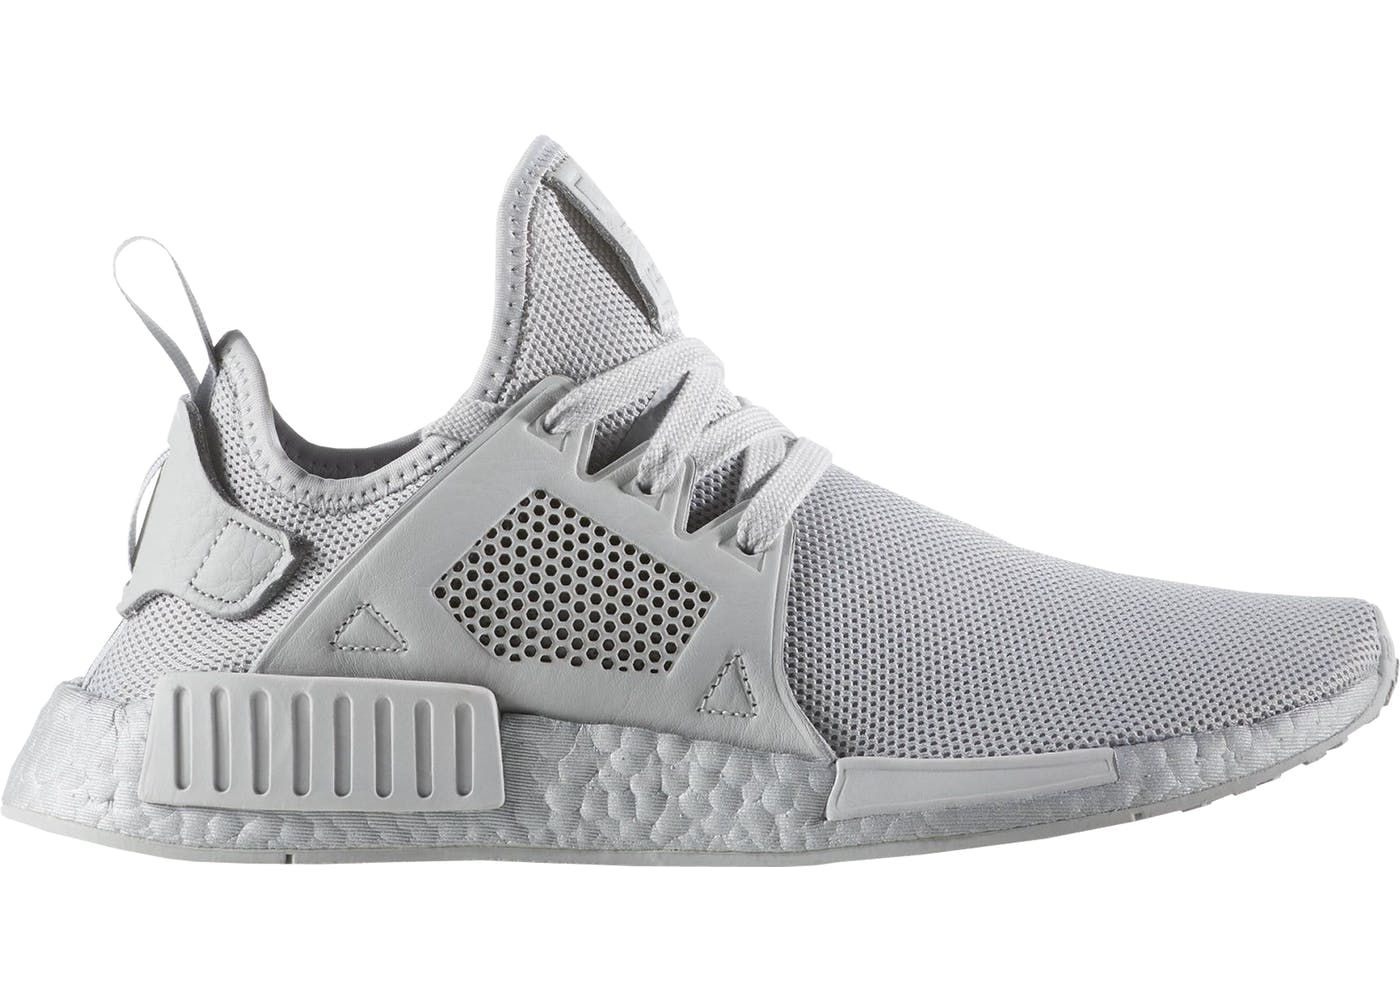 Mastermind Japan x Adidas NMD XR1 PK Red BB3687